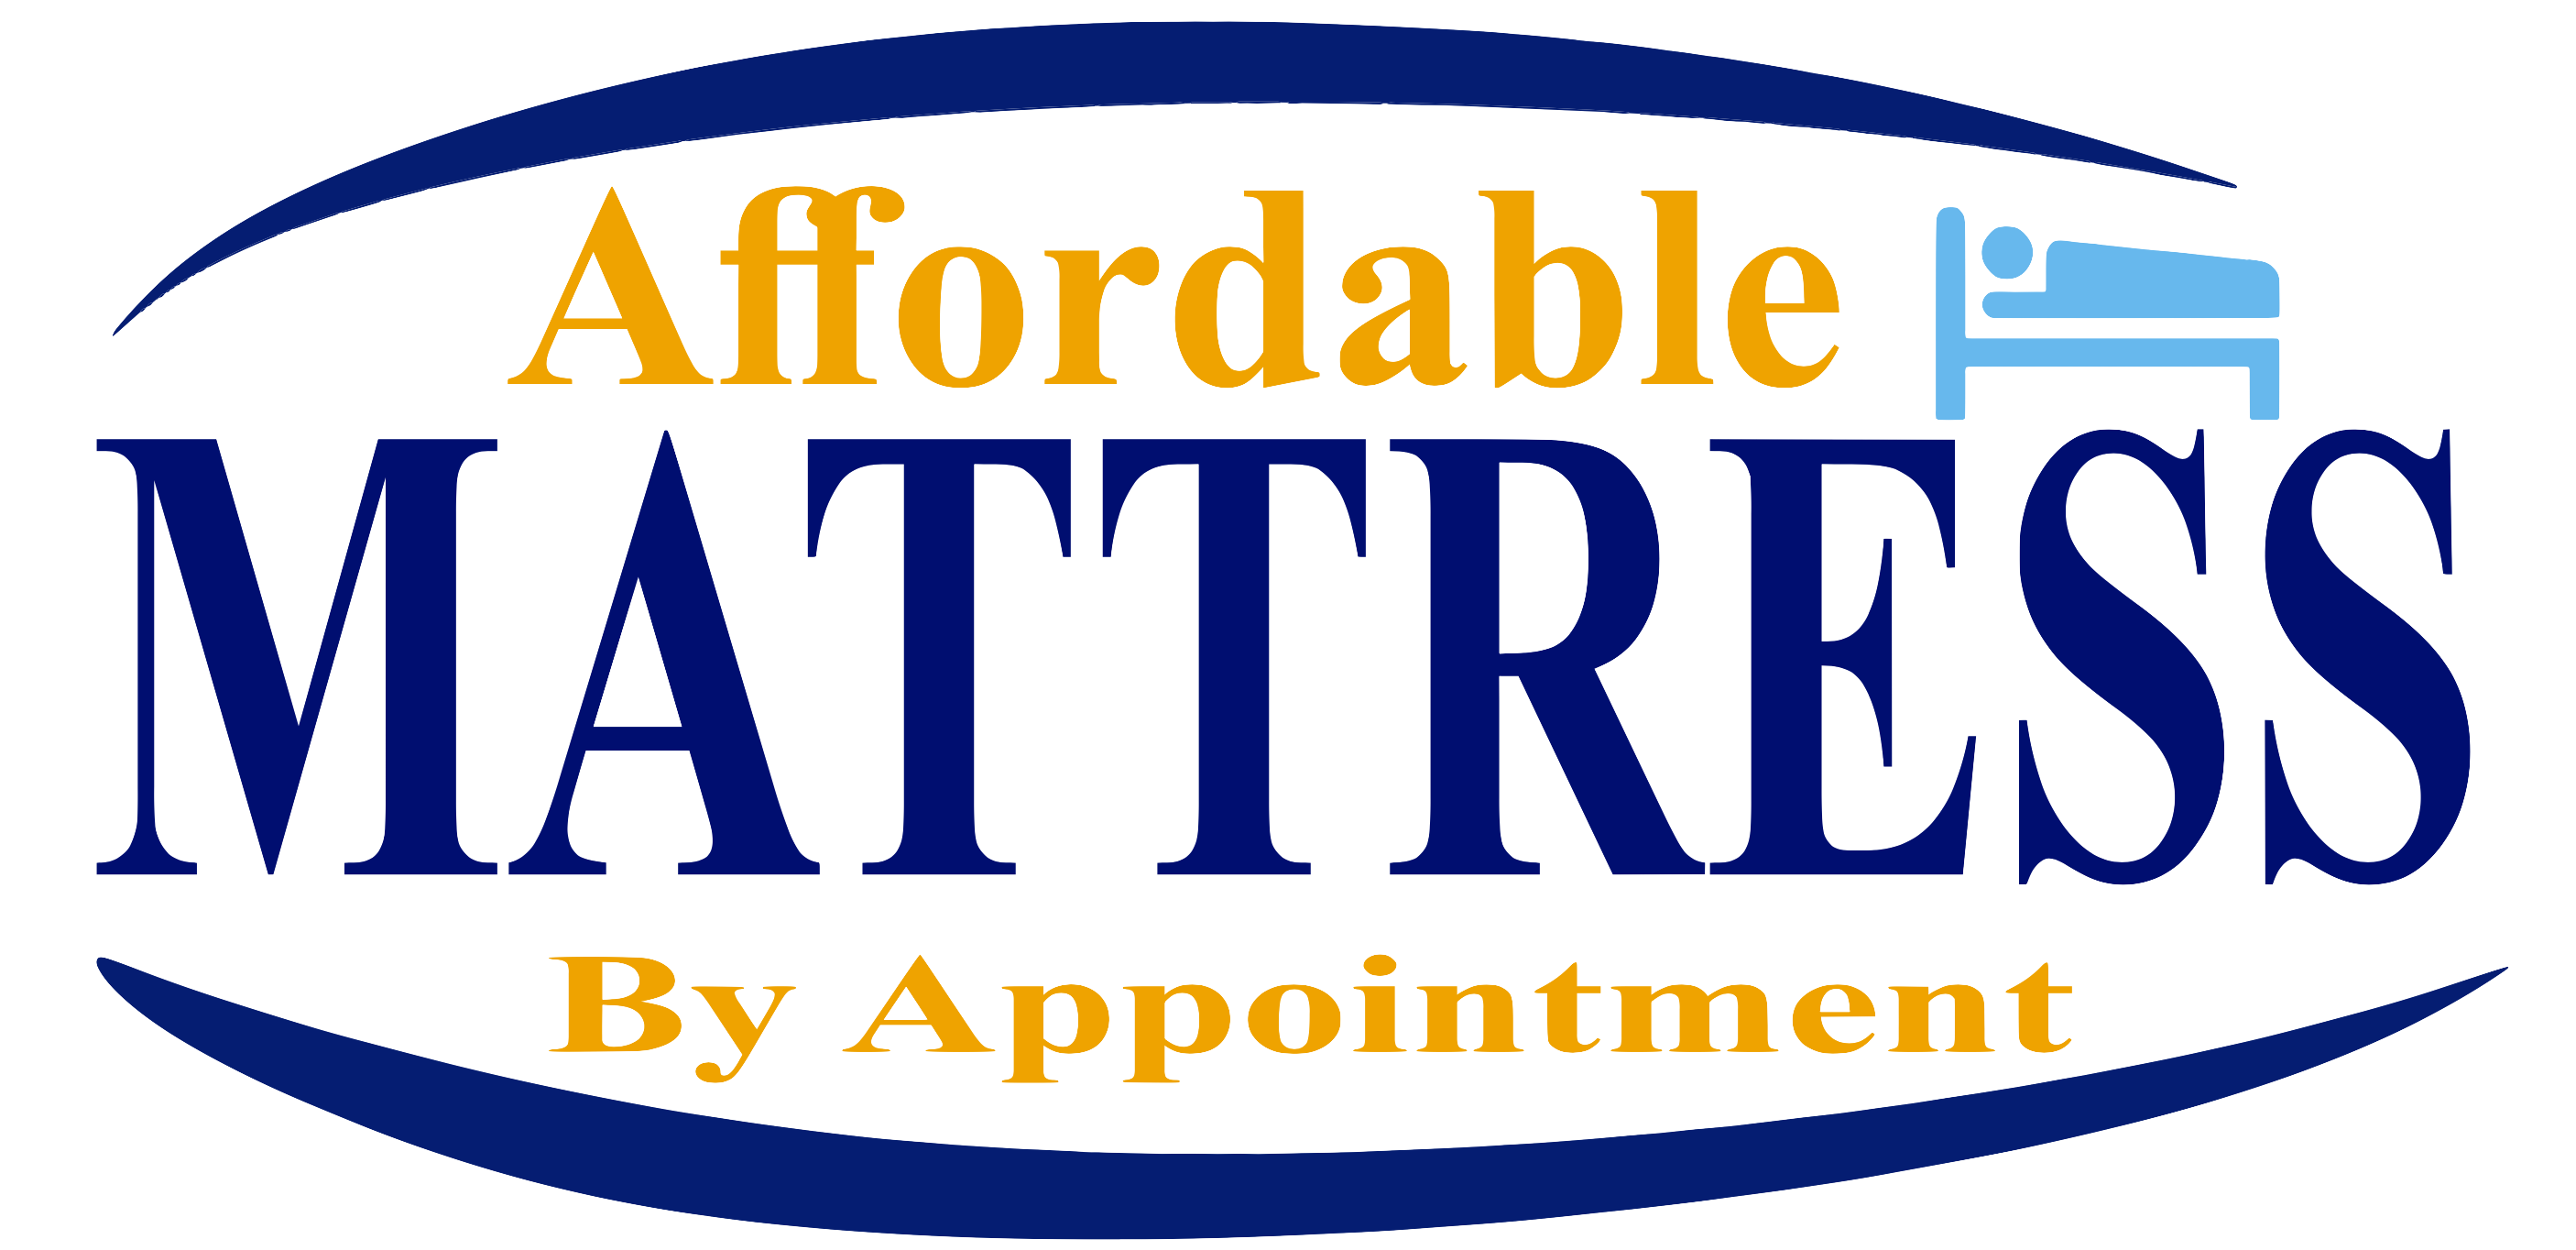 Affordable Mattress Store by Appointment in Holland & Traverse City Michigan Logo